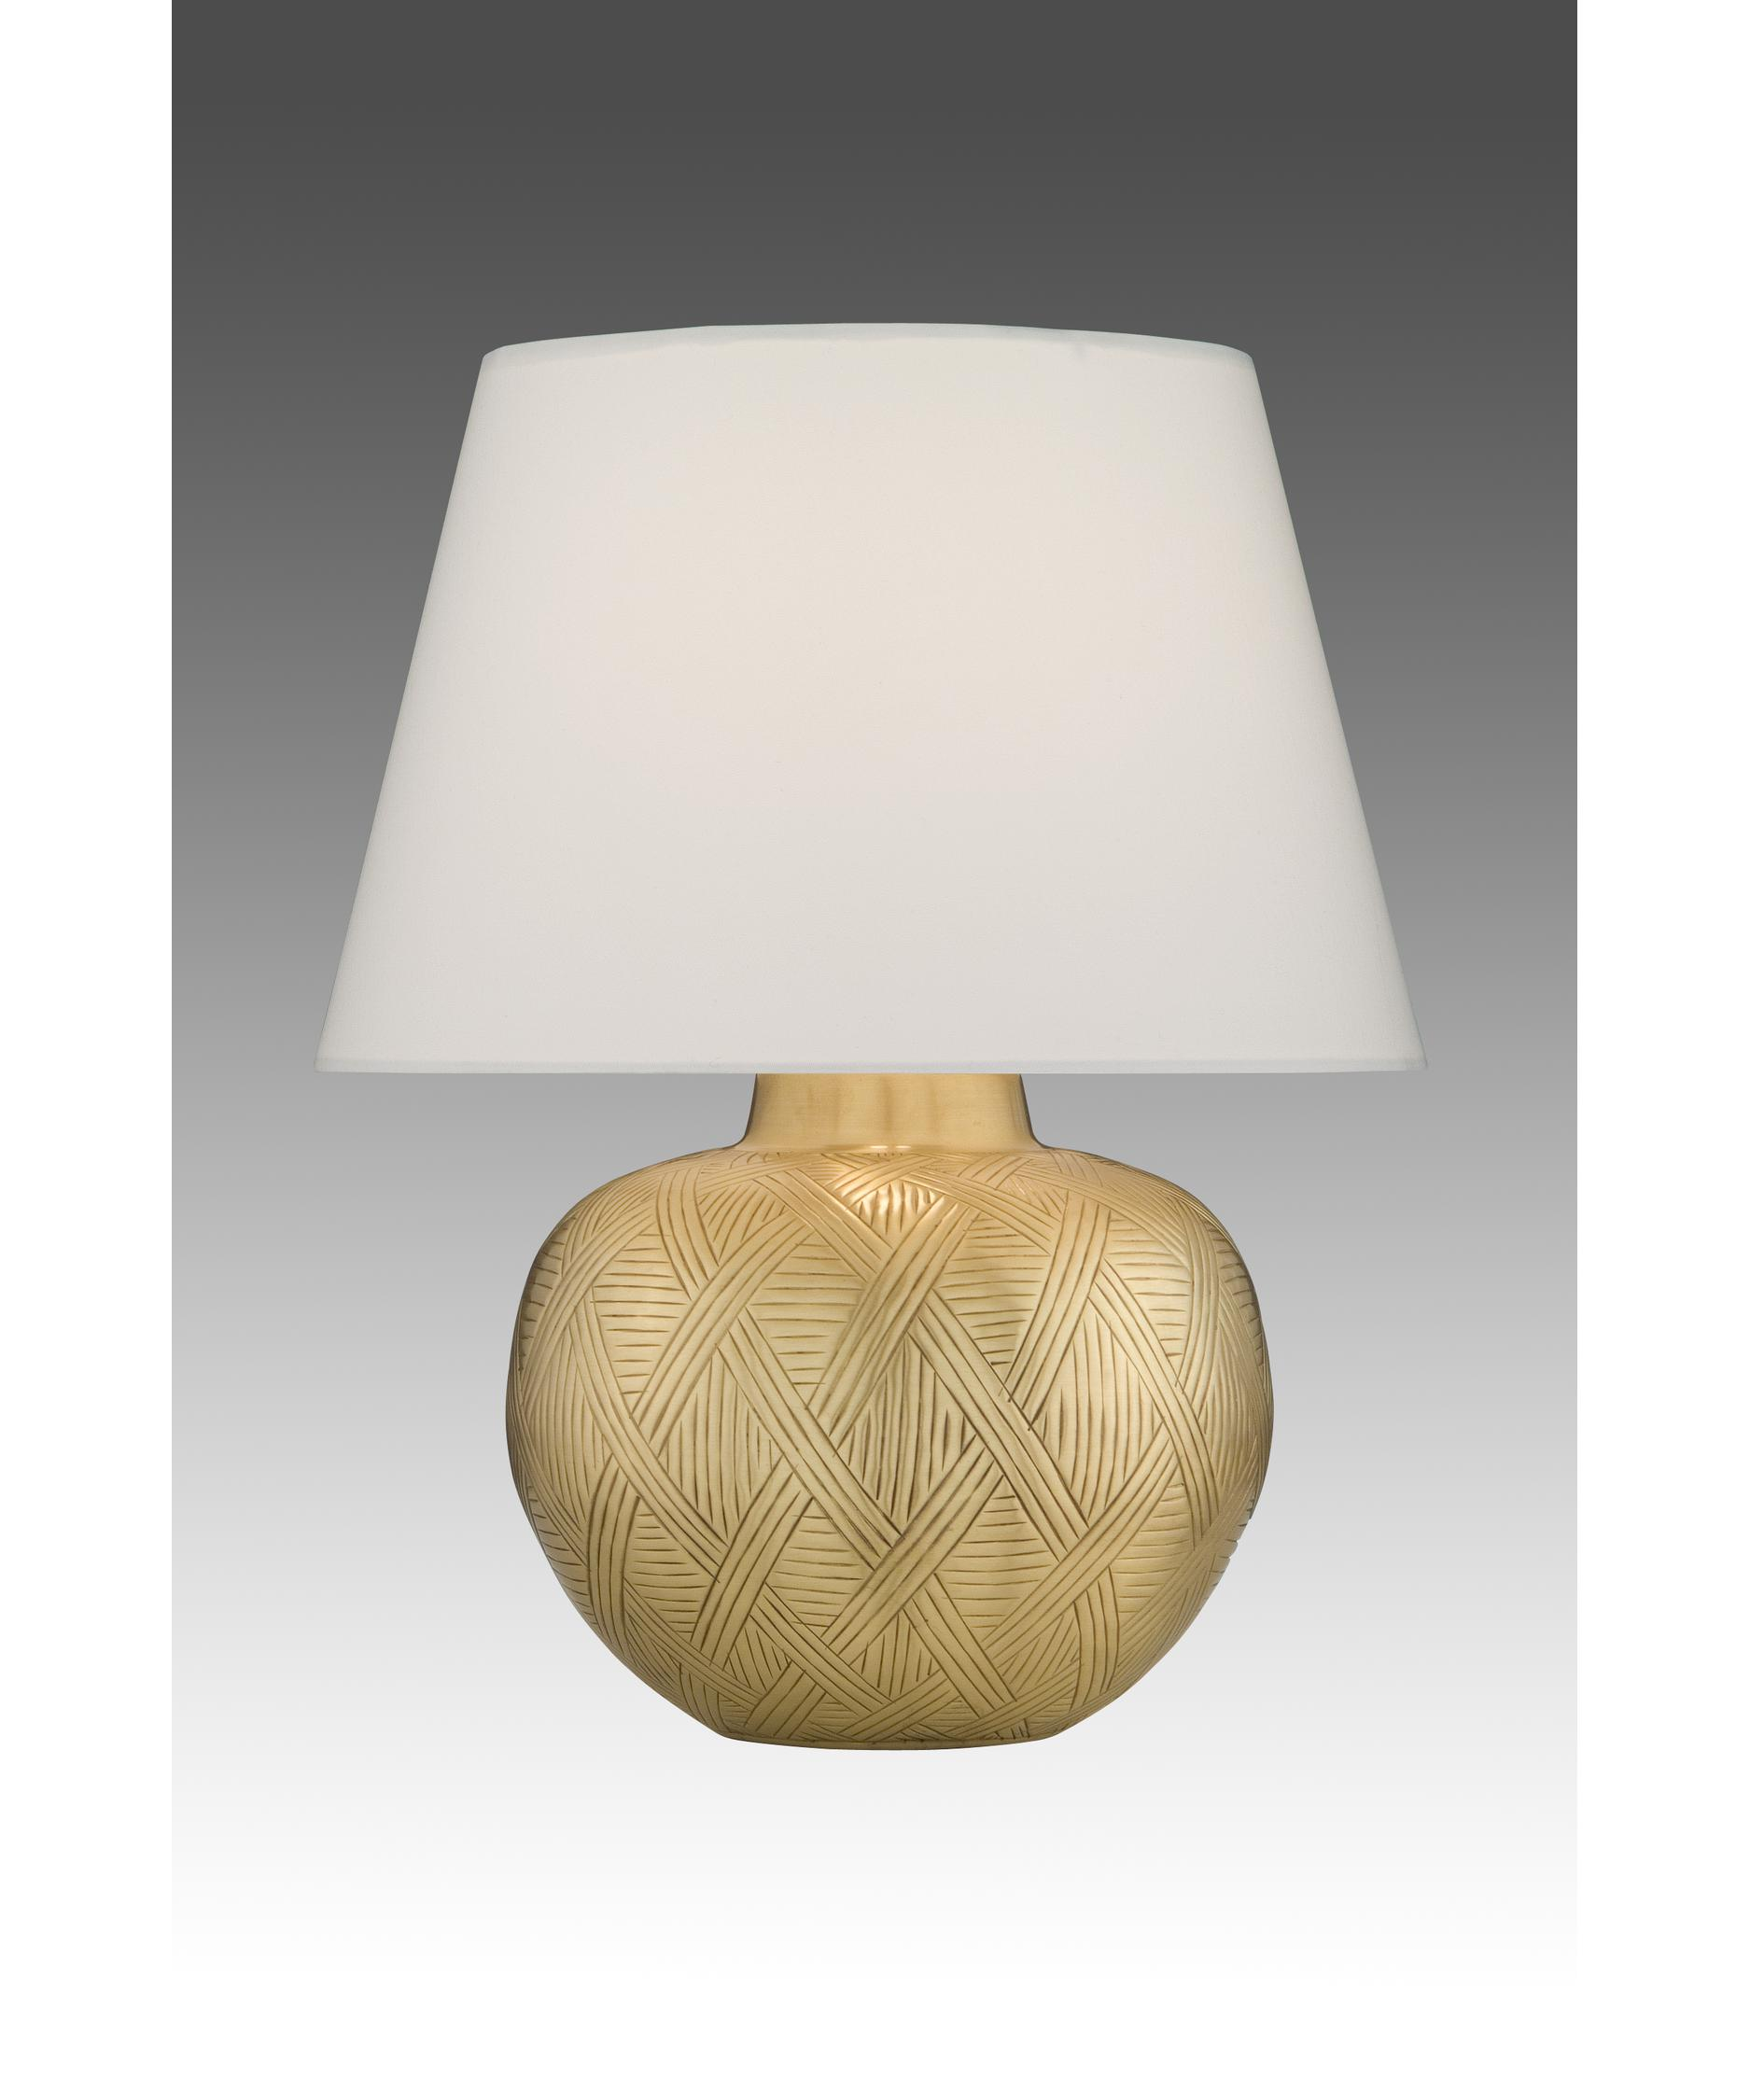 Remington Lamp 2276 Table Lamp In Hammered Brass Satin